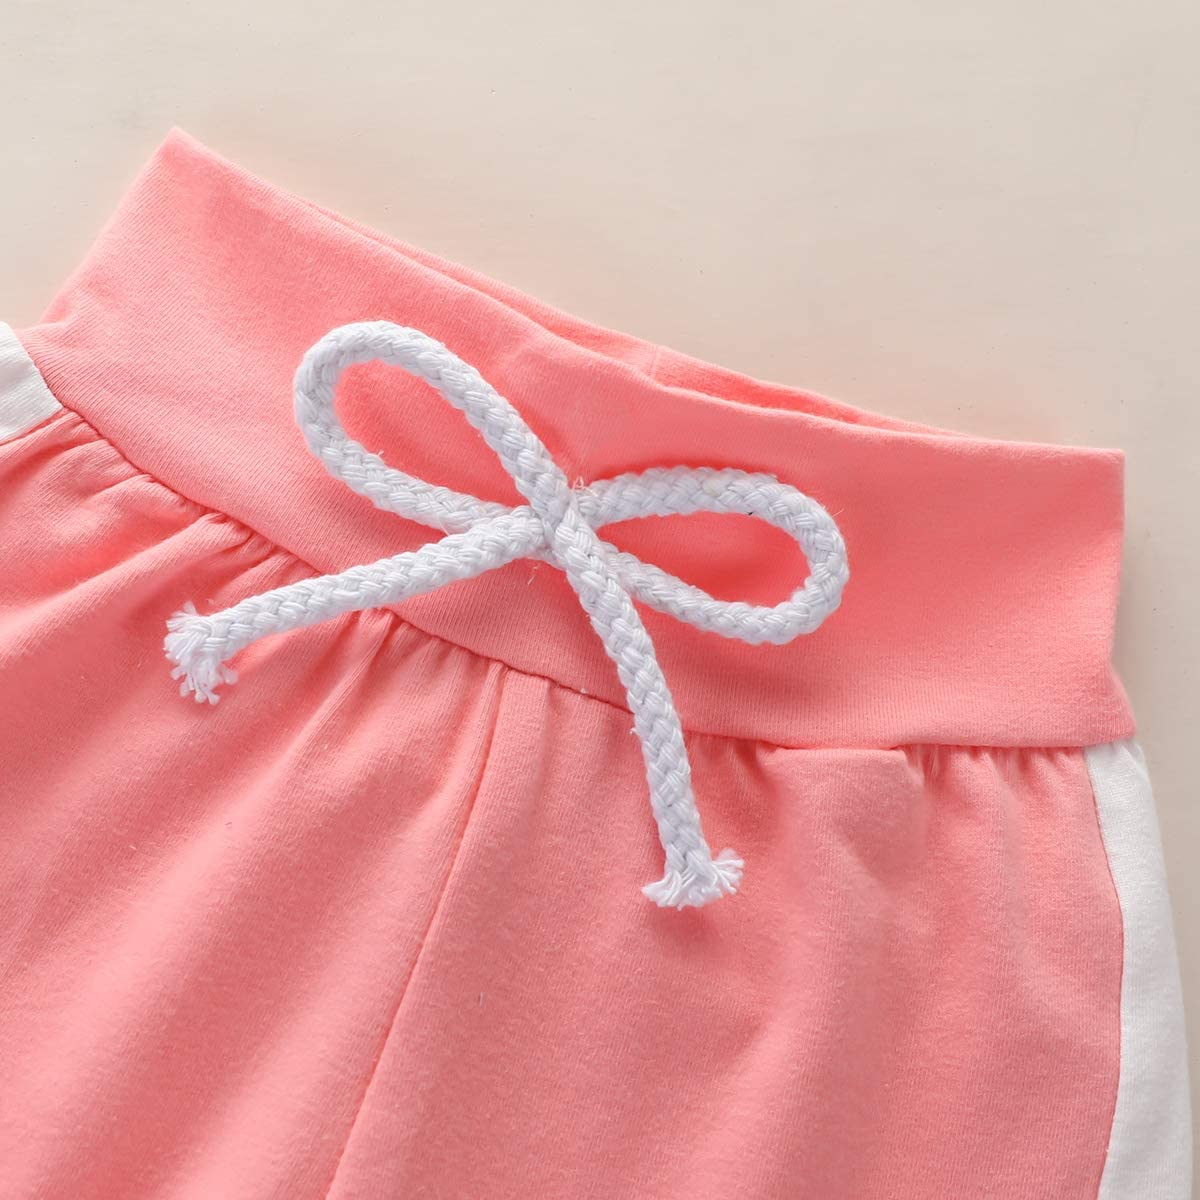 Newborn Baby Girl Pink Clothes Hoodie Letter Print Sweatshirt Top Pants Set with Pocket Baby Girl Fall Winter Outfit 2Pcs